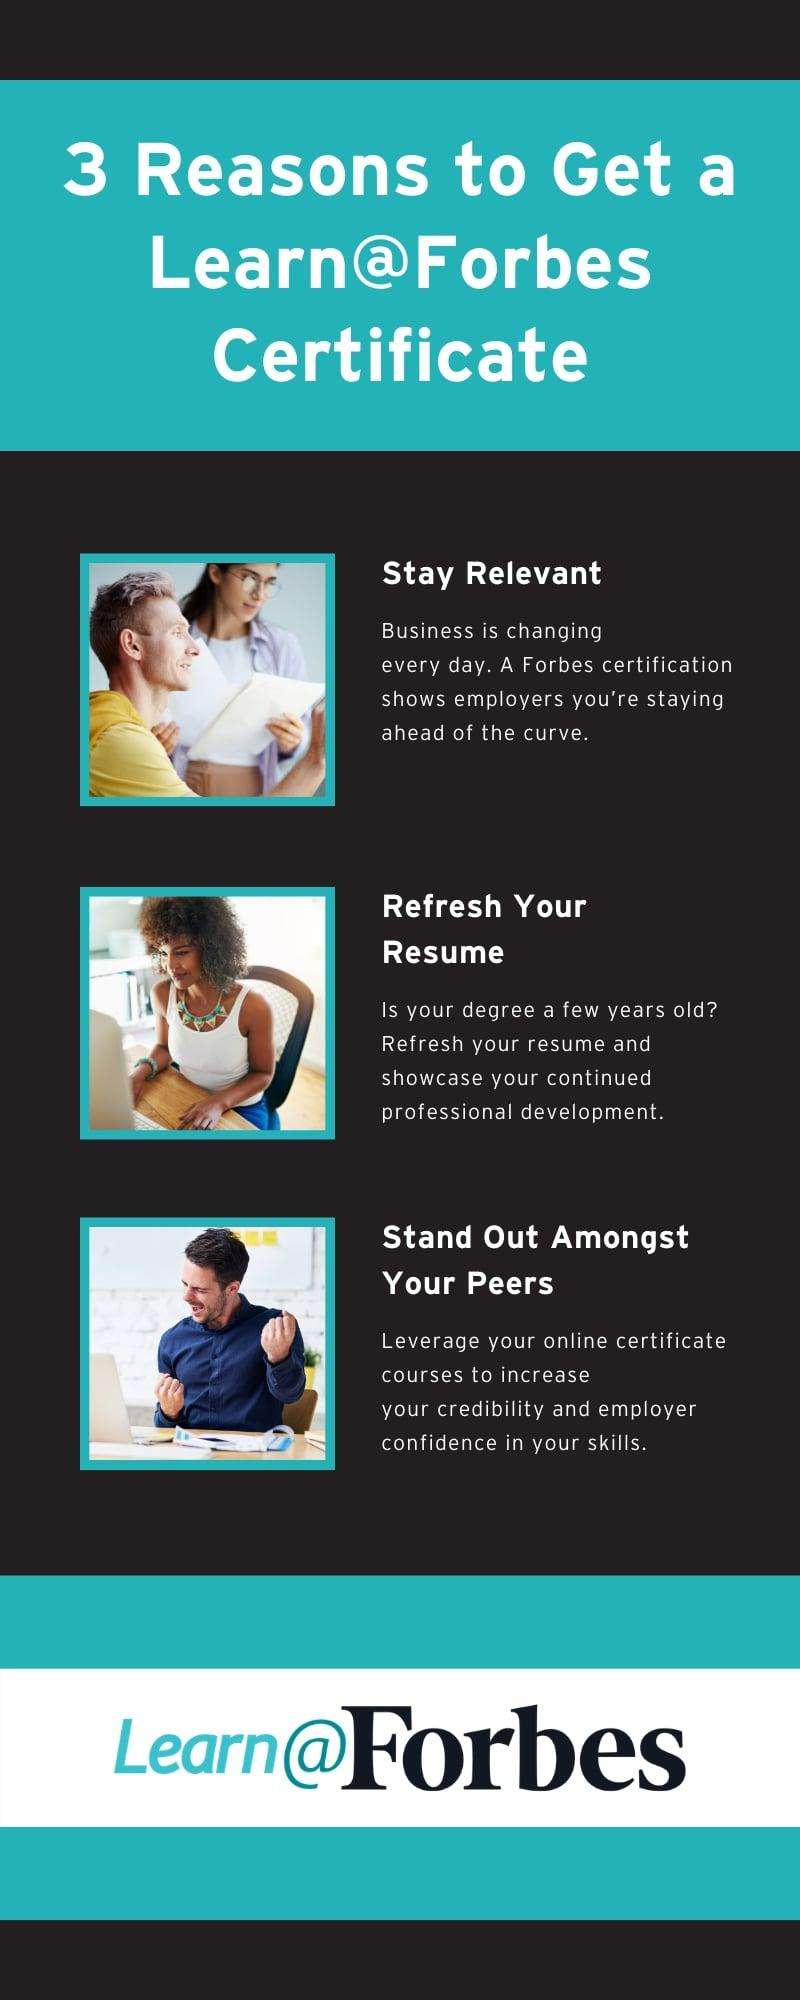 3 Reasons to Get a Learn@Forbes Certificate